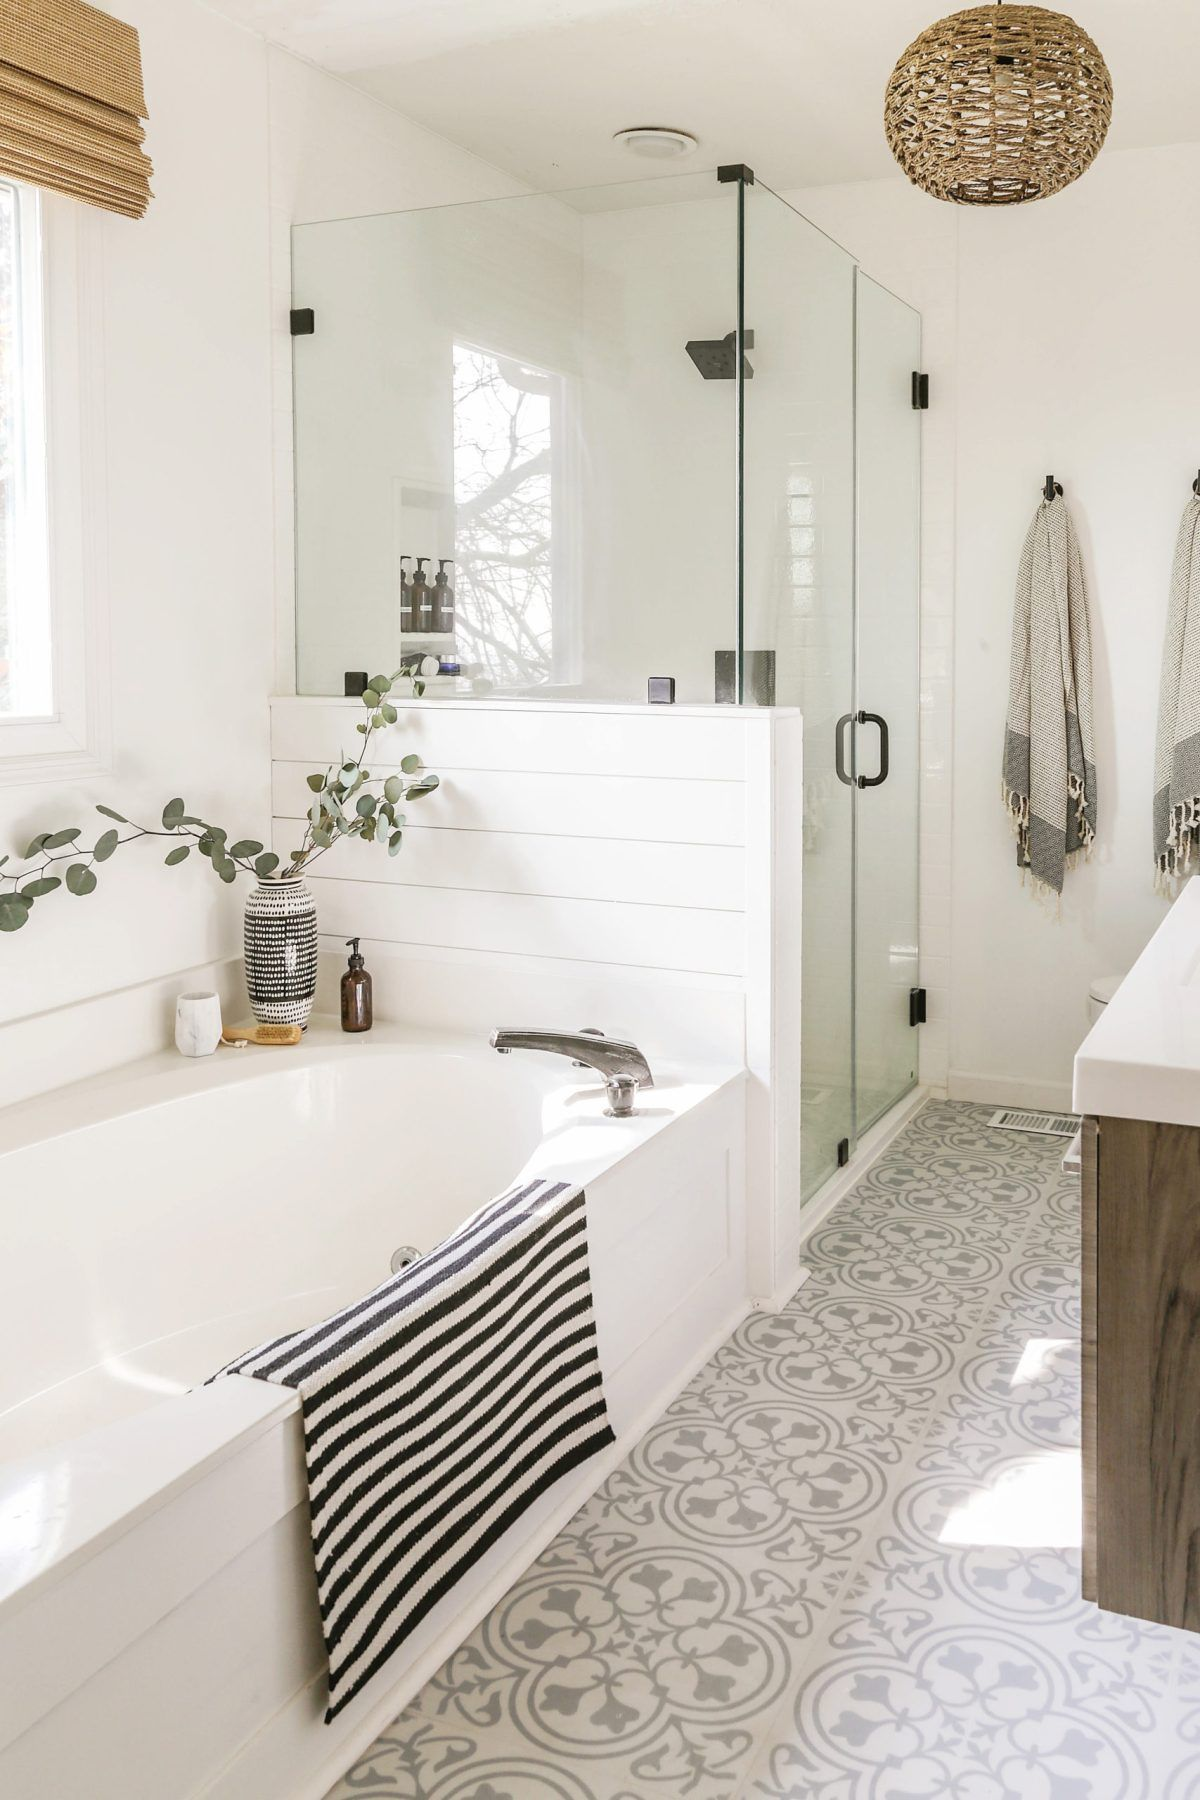 Reveal: Boho Farmhouse Master Bathroom Remodel with Decor Sources